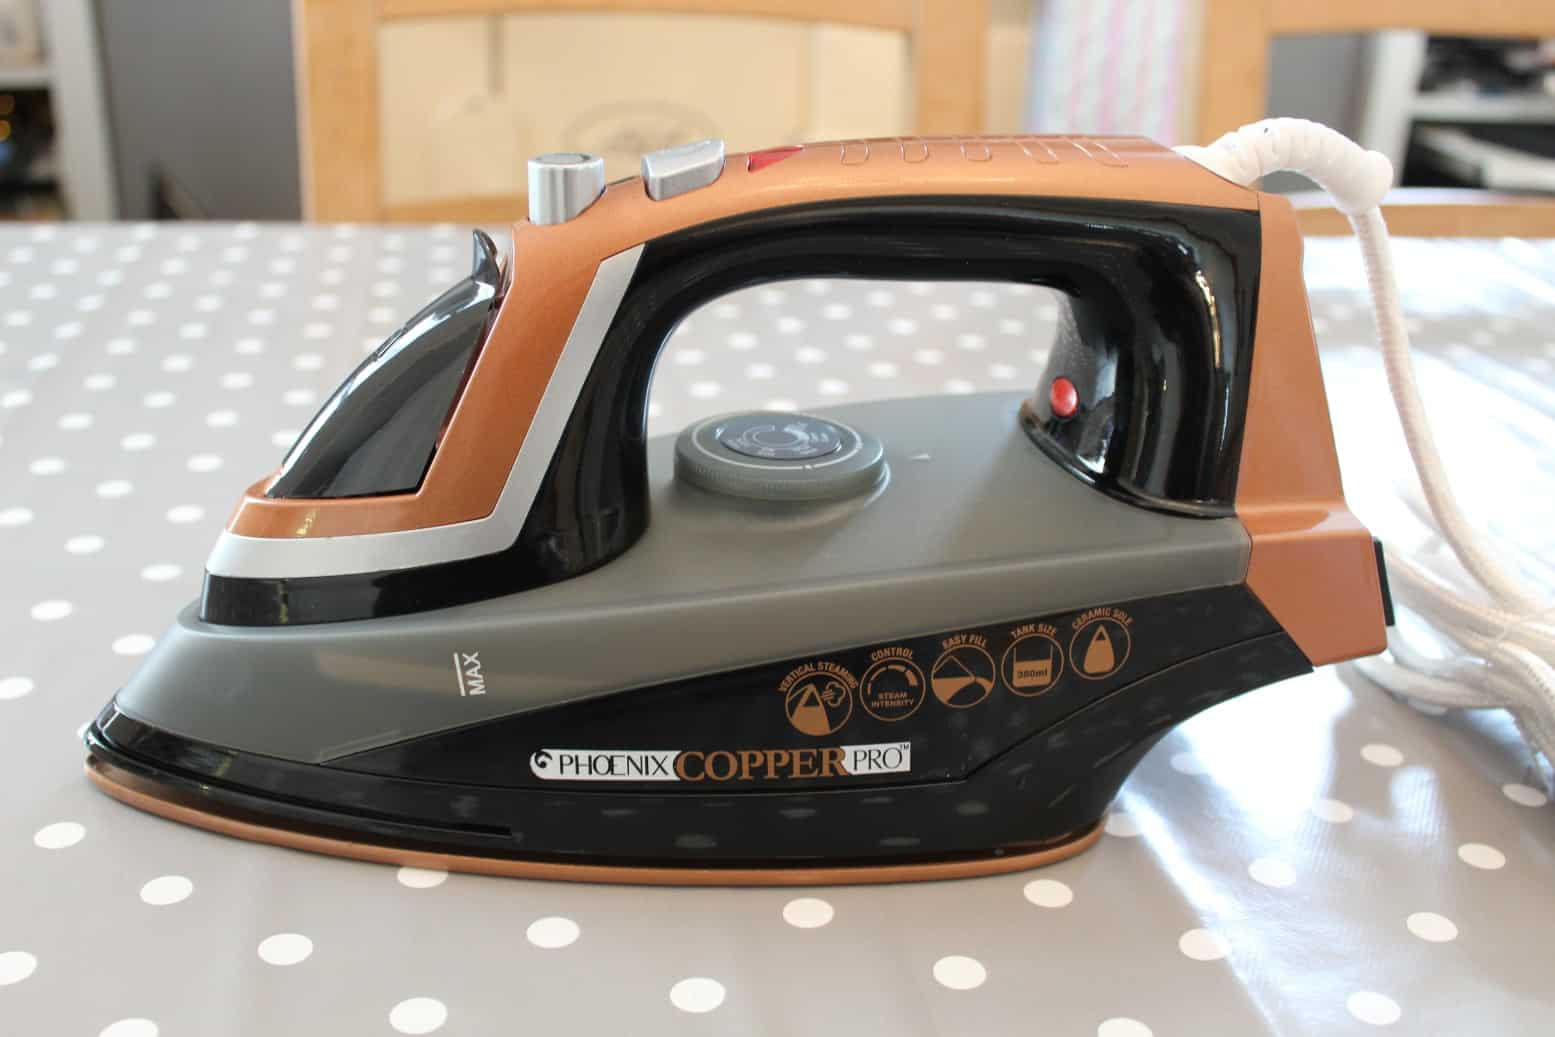 JML Iron  – Review of the JML Phoenix Copper Iron